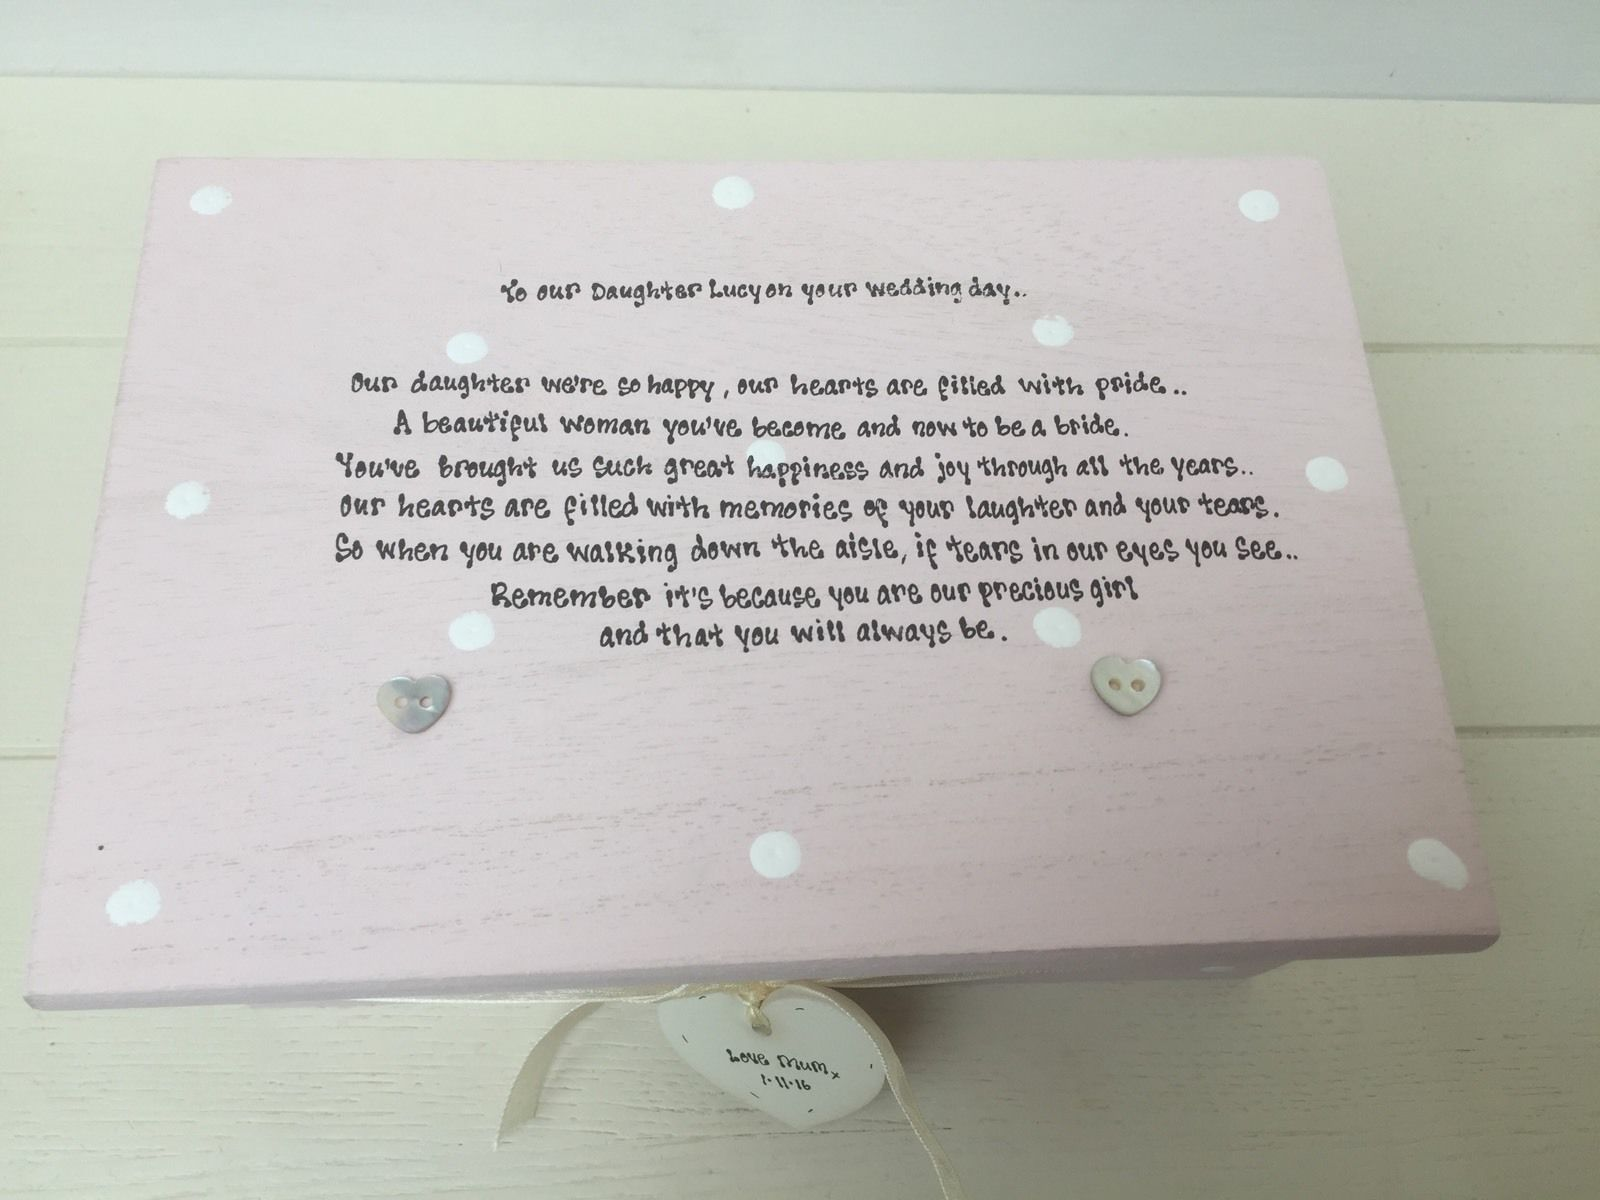 Gifts For Your Daughter On Her Wedding Day: Shabby Personalised Chic Jewellery Box Gift For Daughter